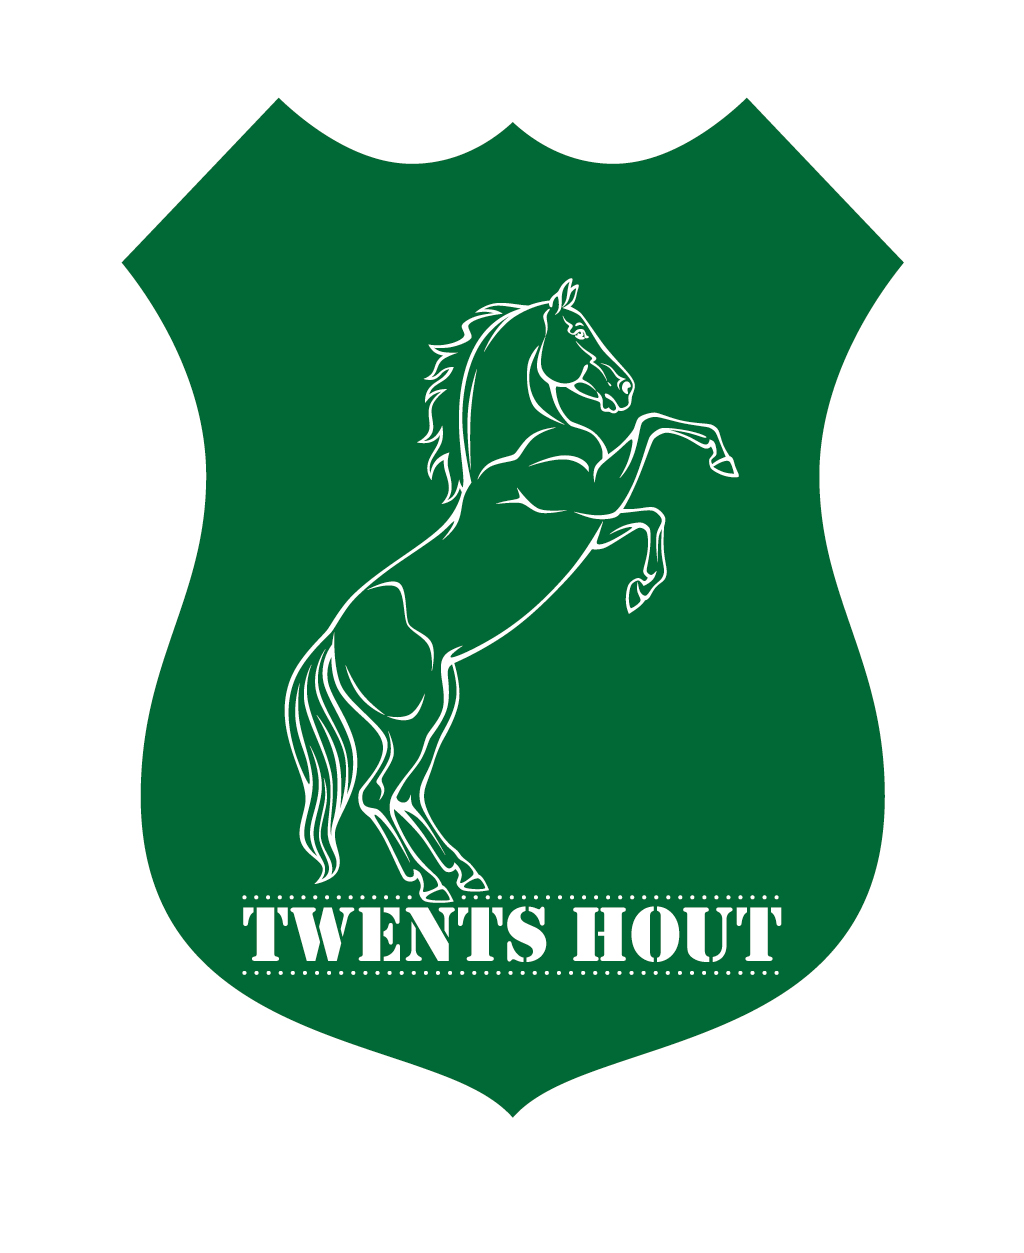 Twents Hout